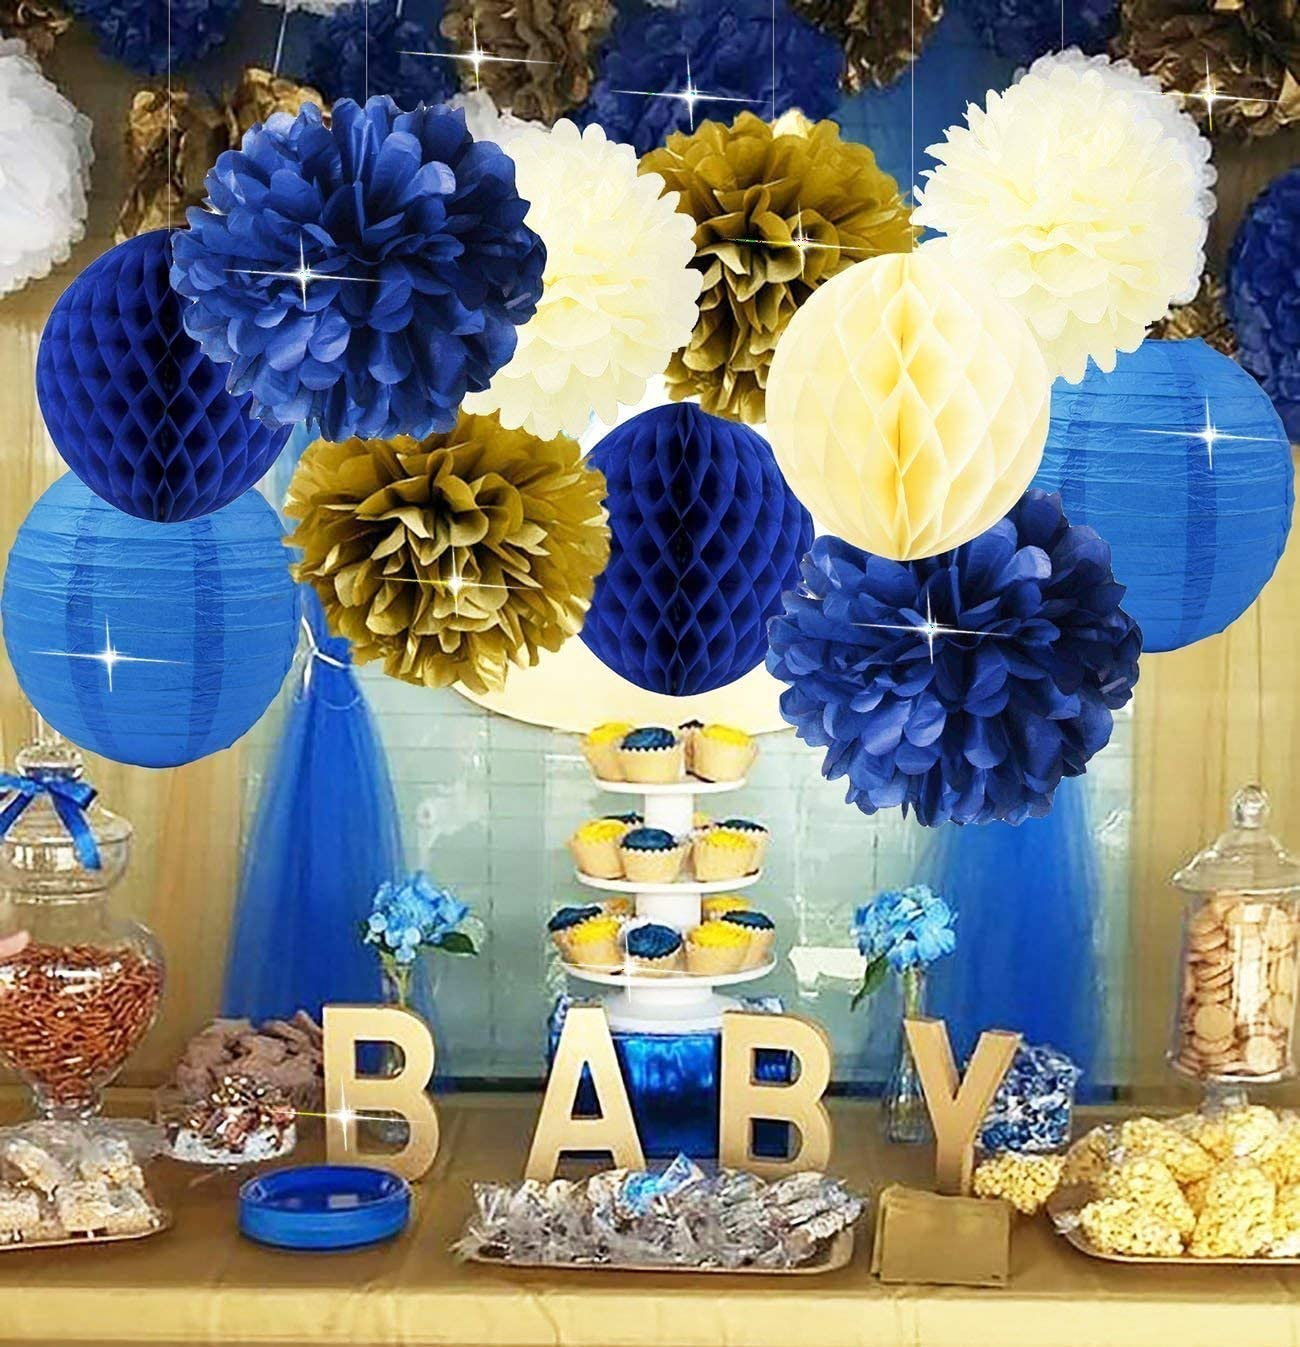 Blue and Gold Baby Shower Decoration It/'s A Boy /& Baby Shower Banner with Paper Lantern Pompoms Flowers Honeycomb Ball Balloons Tassel Baby Shower Decorations for Boy